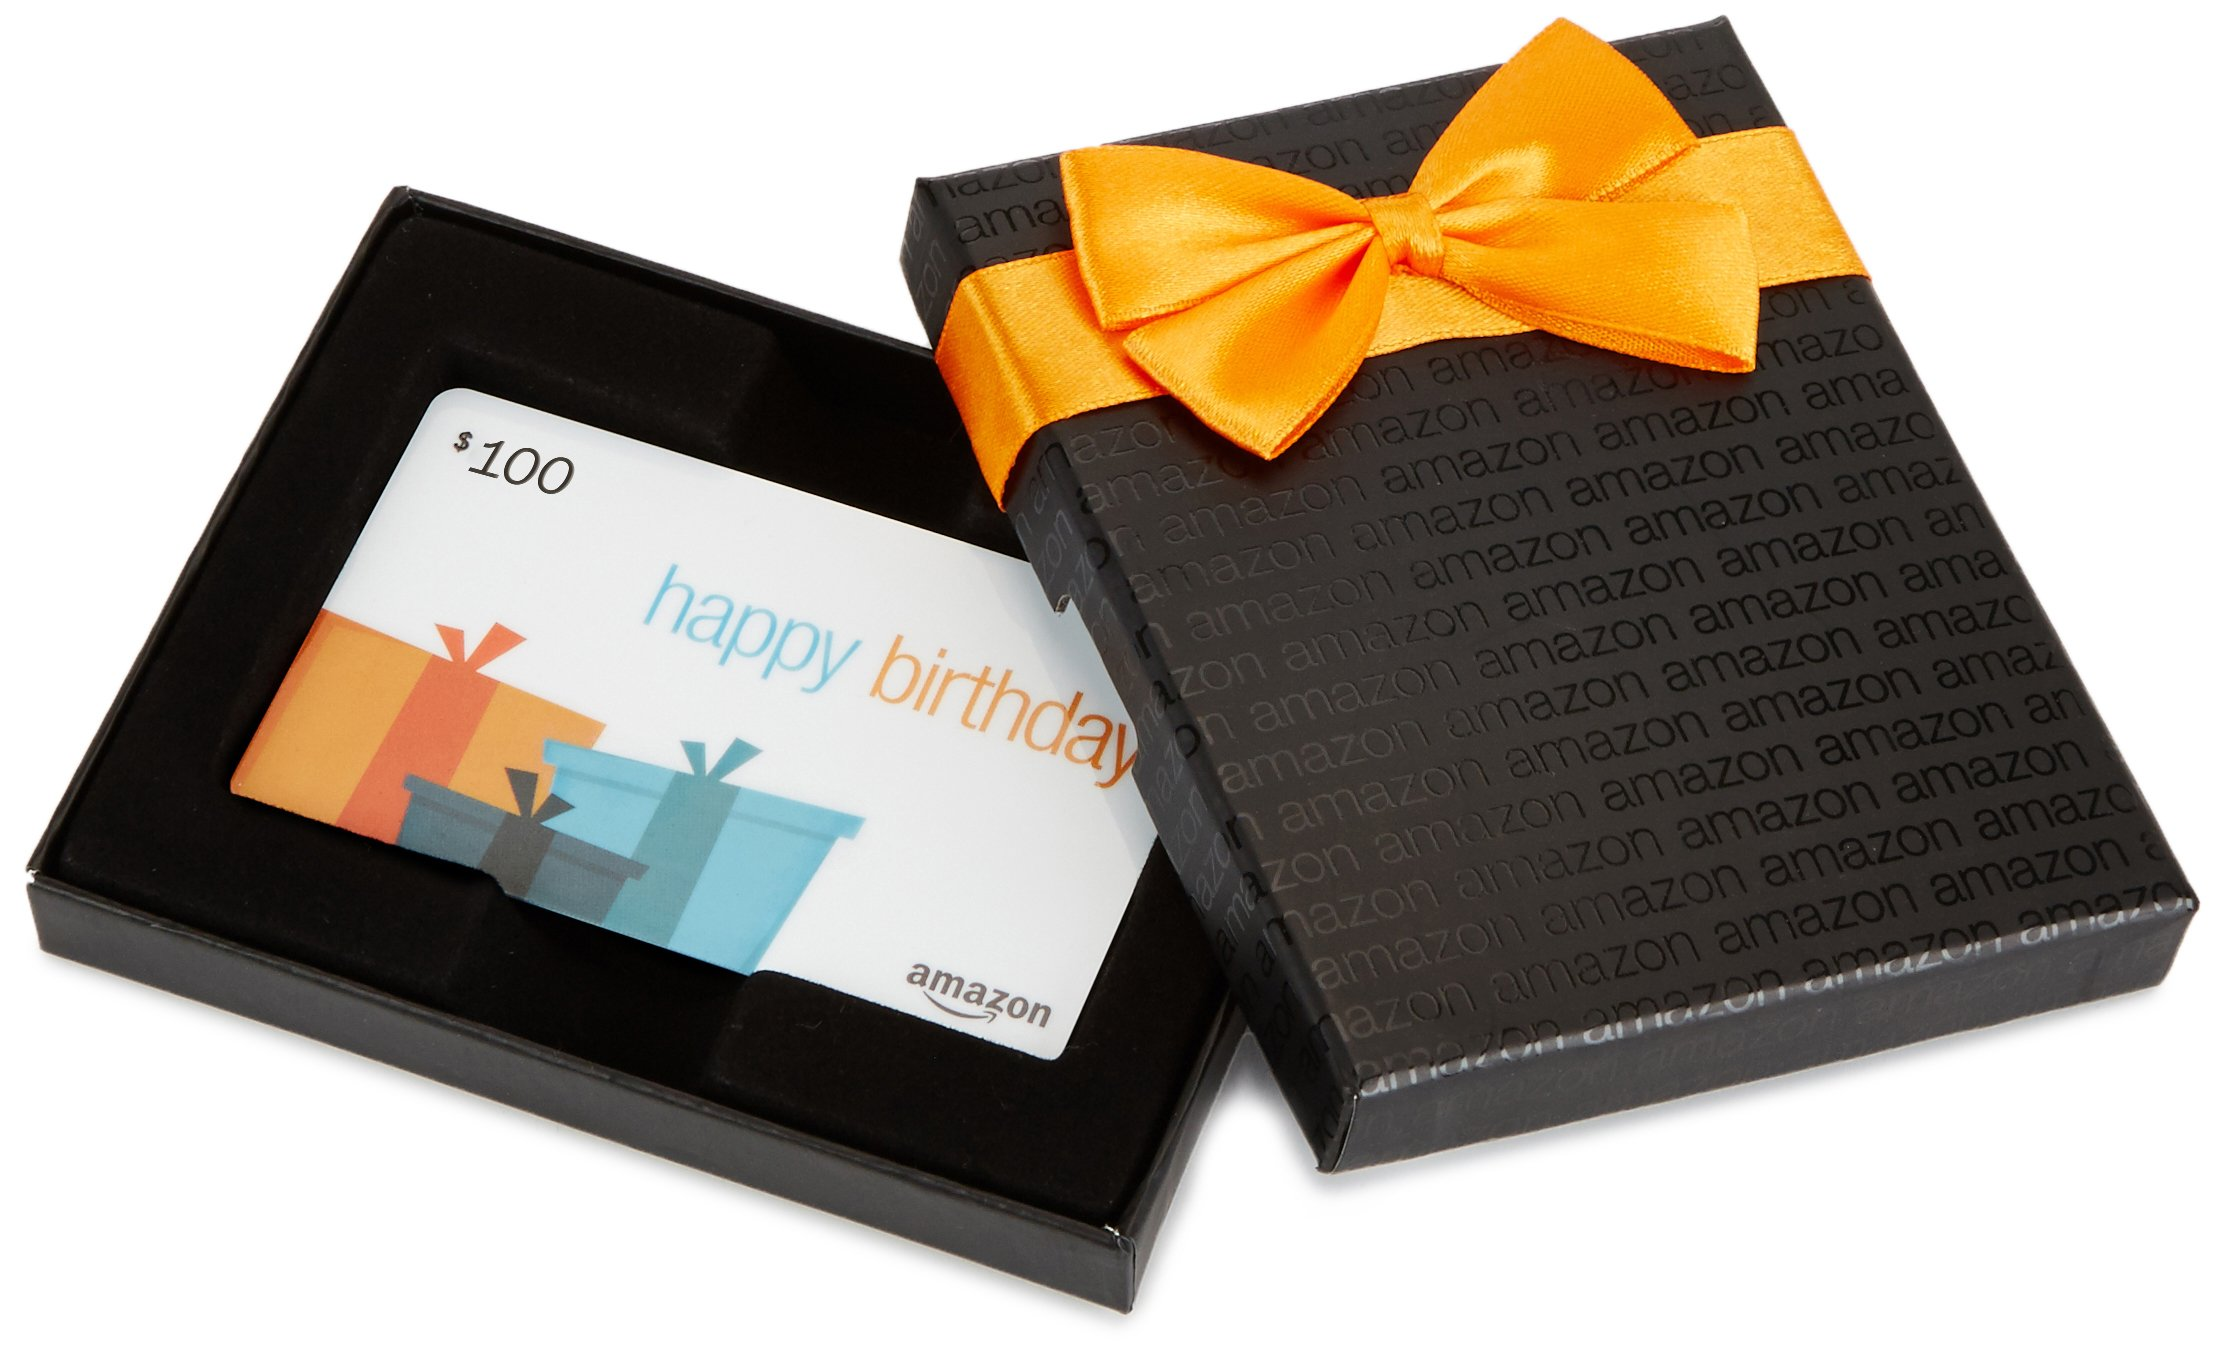 Amazon.com $100 Gift Card in a Black Gift Box (Birthday Presents Card Design) by Amazon